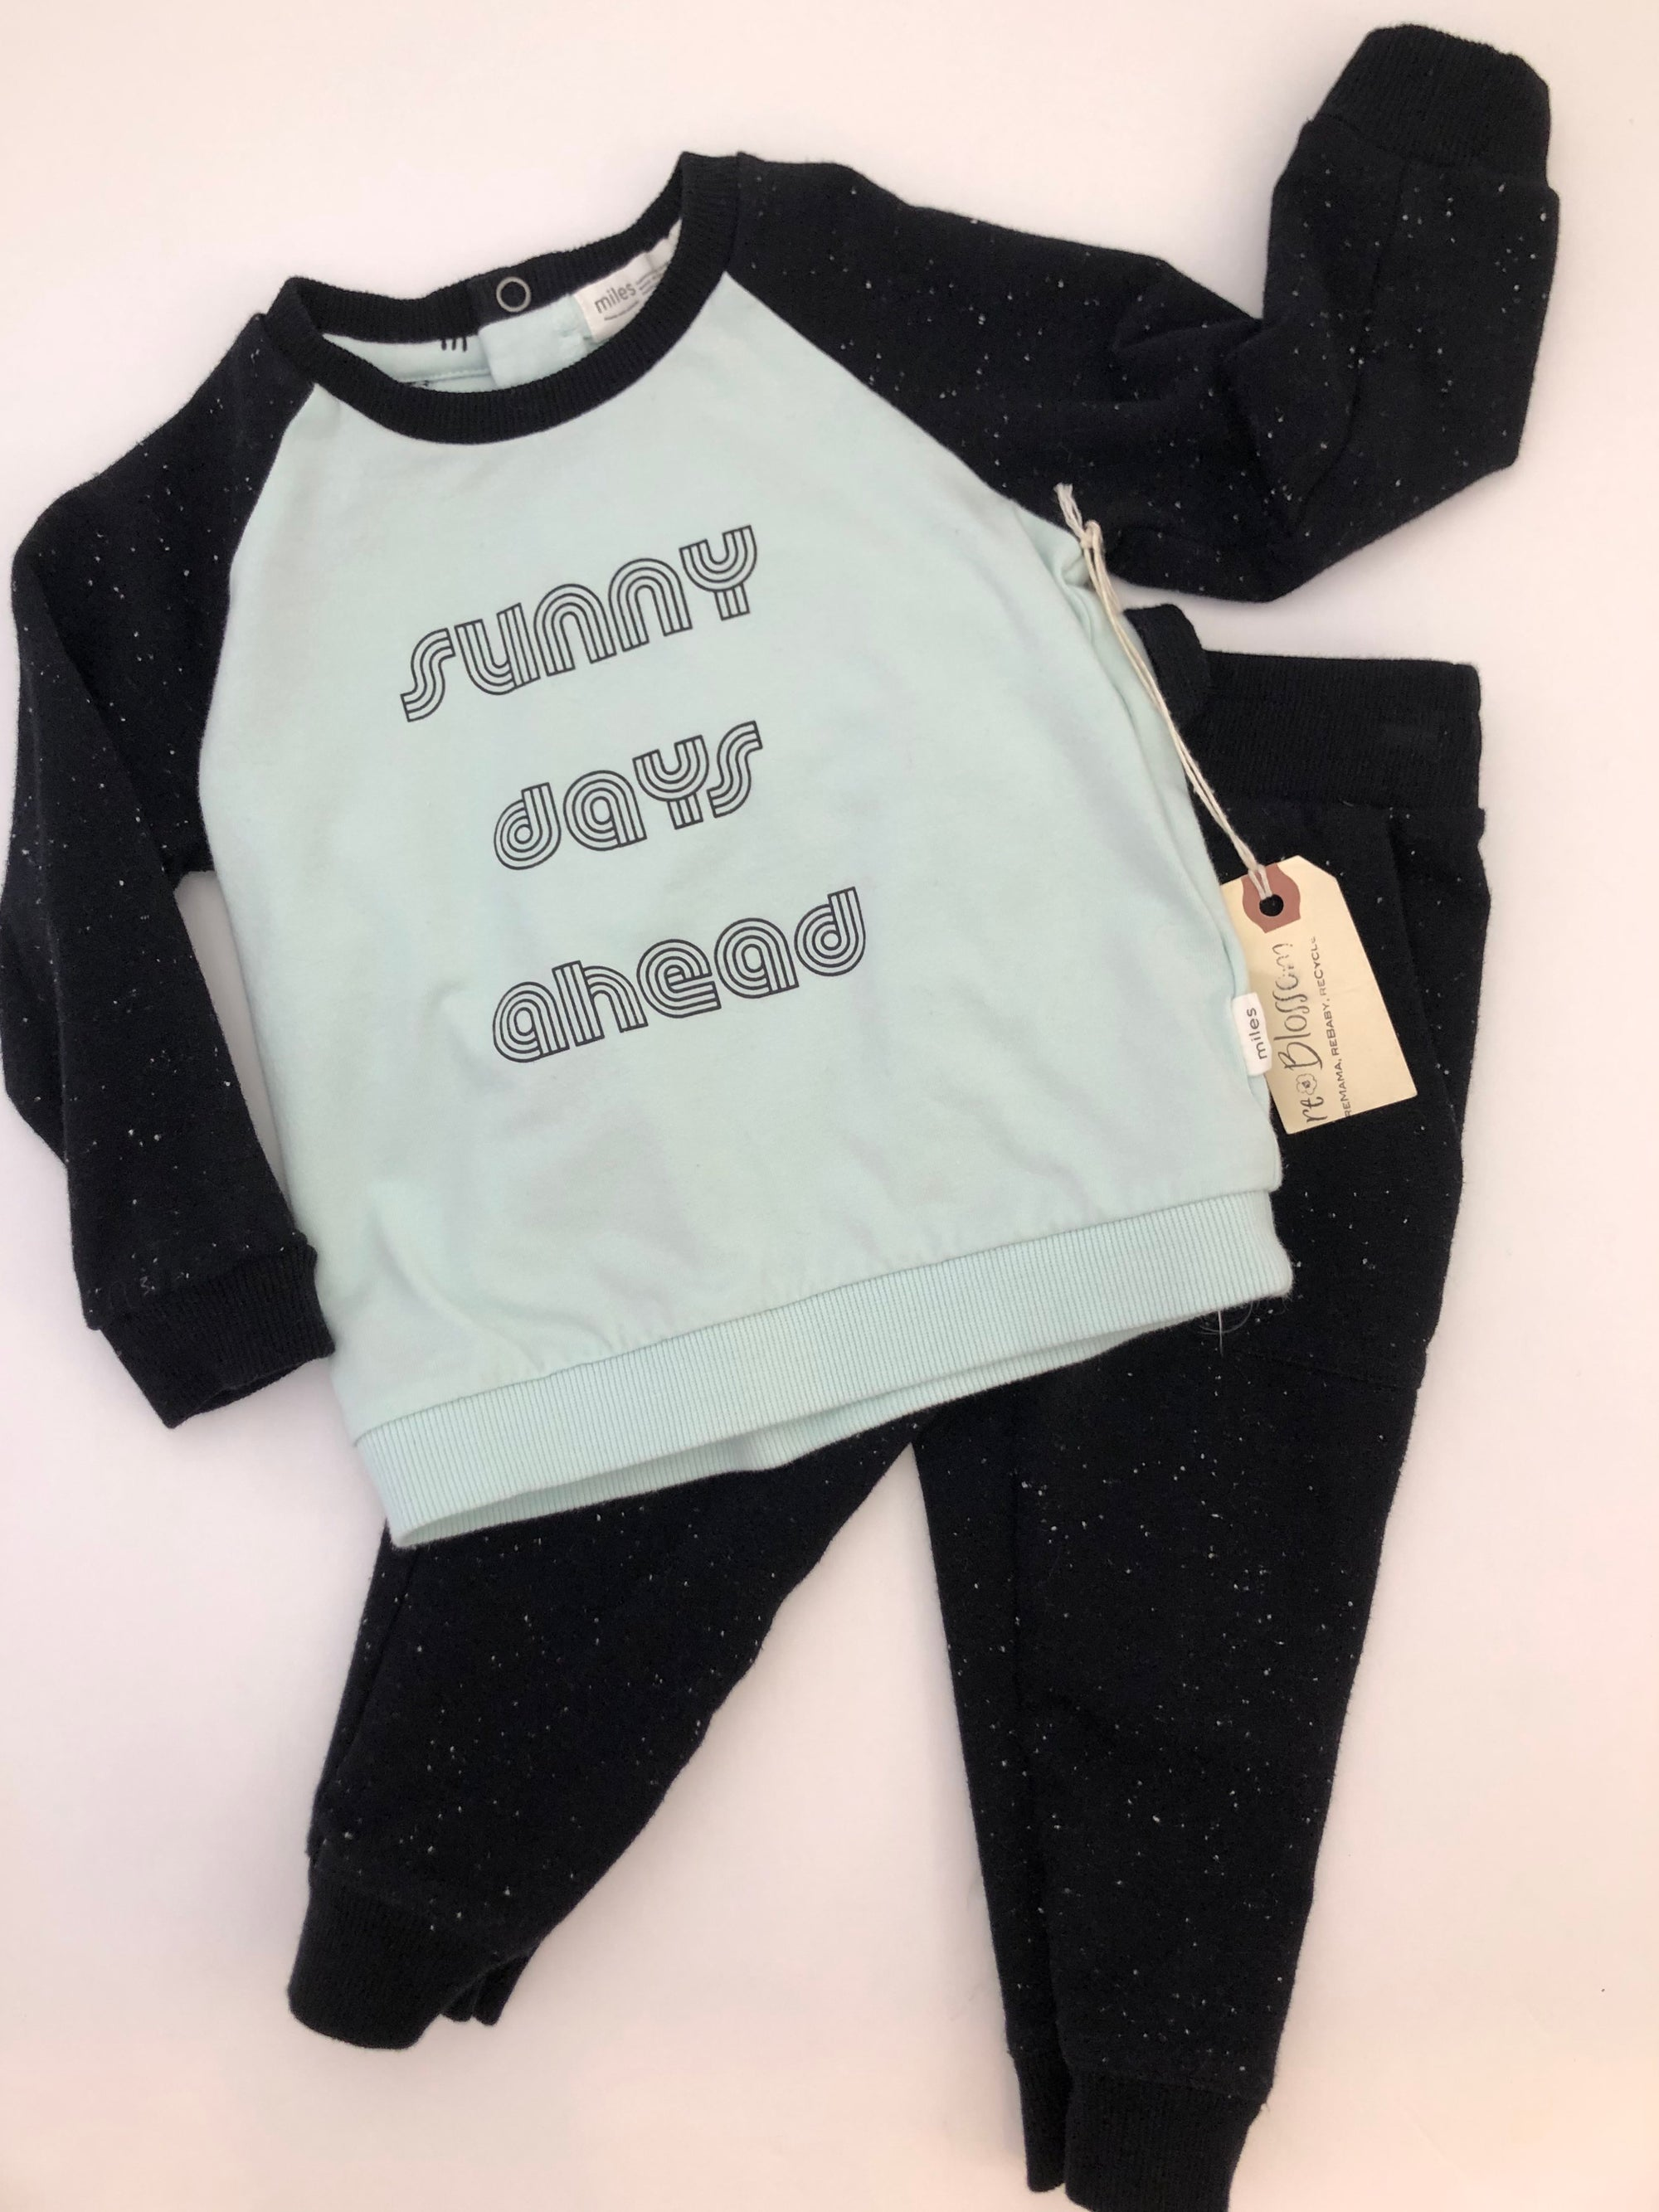 Resale 18 m Miles Baby Sunny Days Ahead Pullover & Pants Set